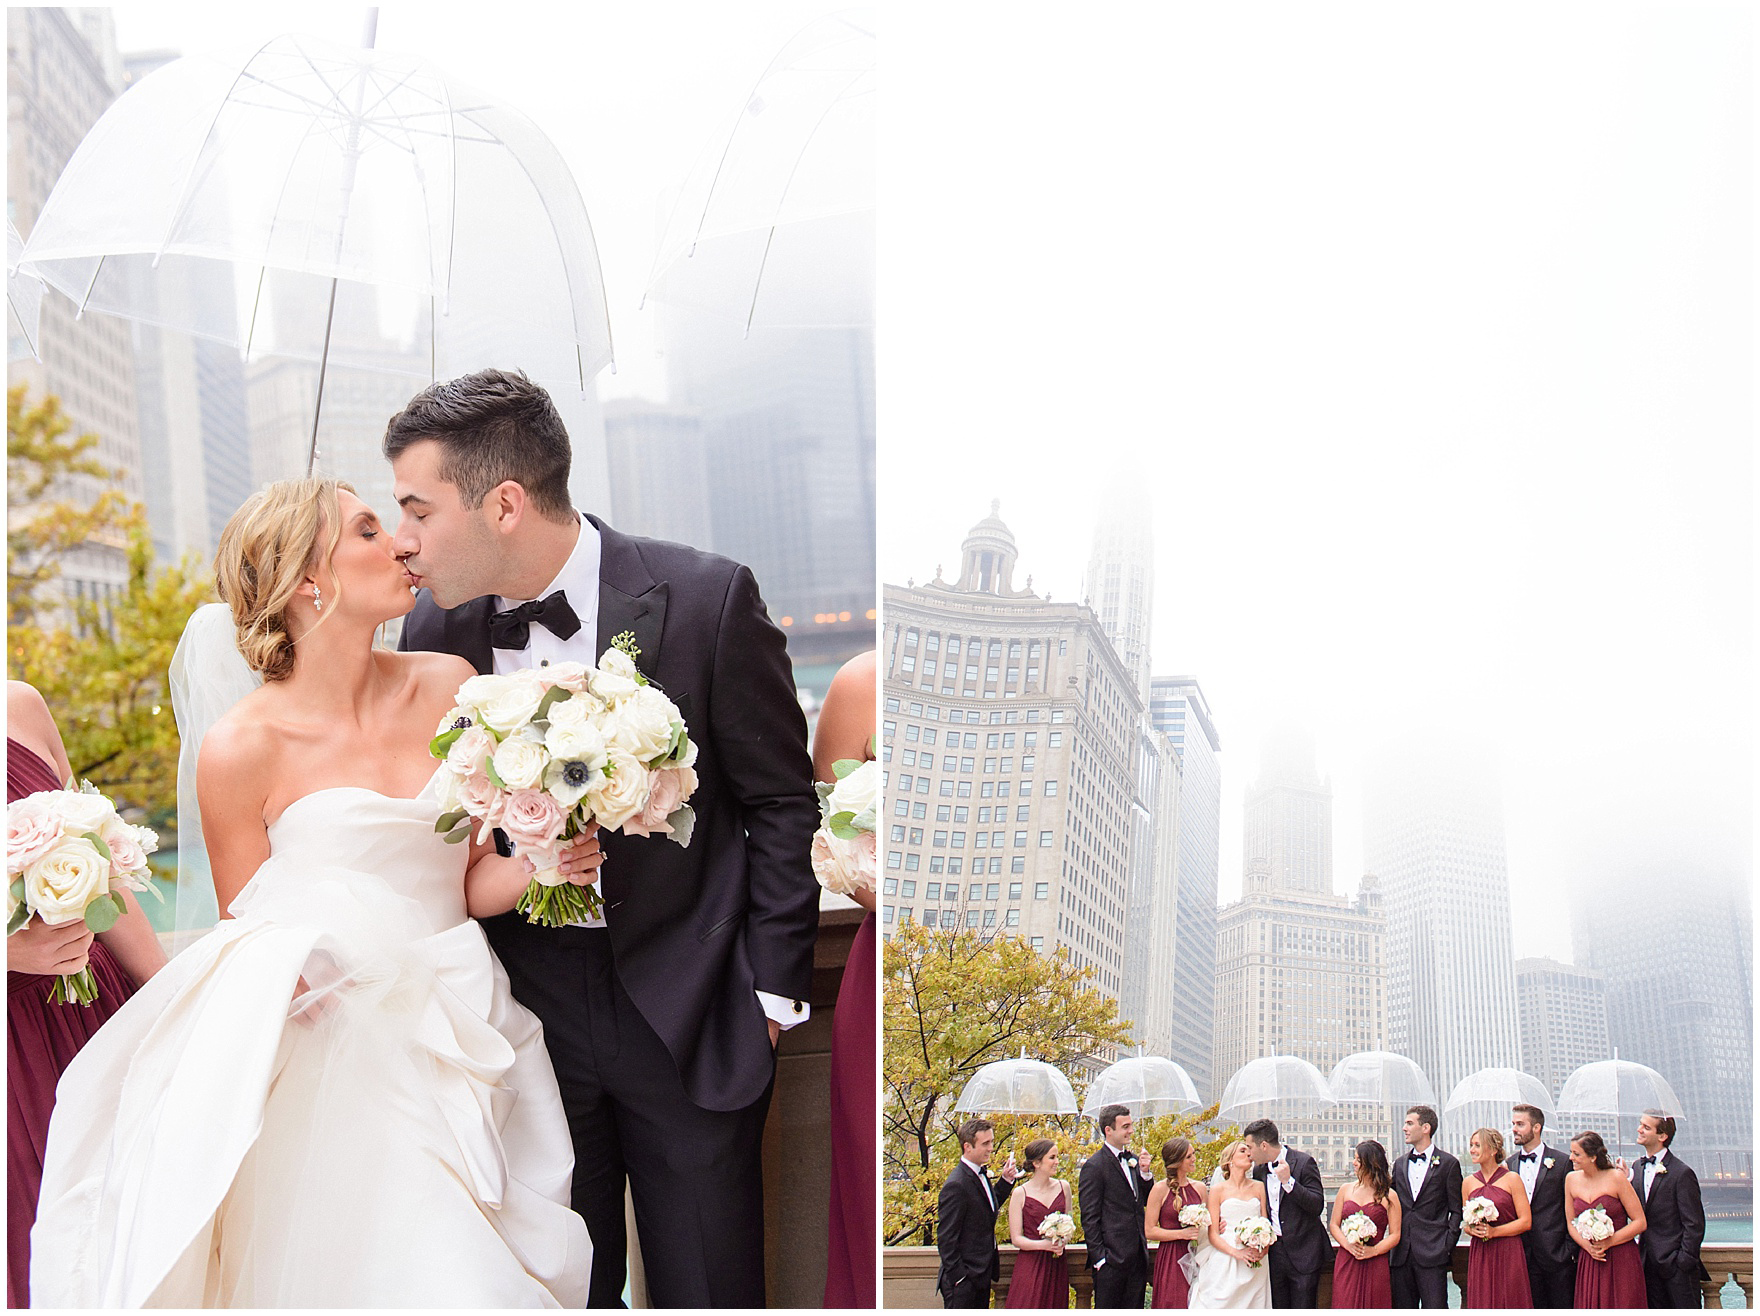 A wedding party poses in front of Chicago's skyline on a misty, rainy day during a St. Clement Germania Place Chicago wedding.